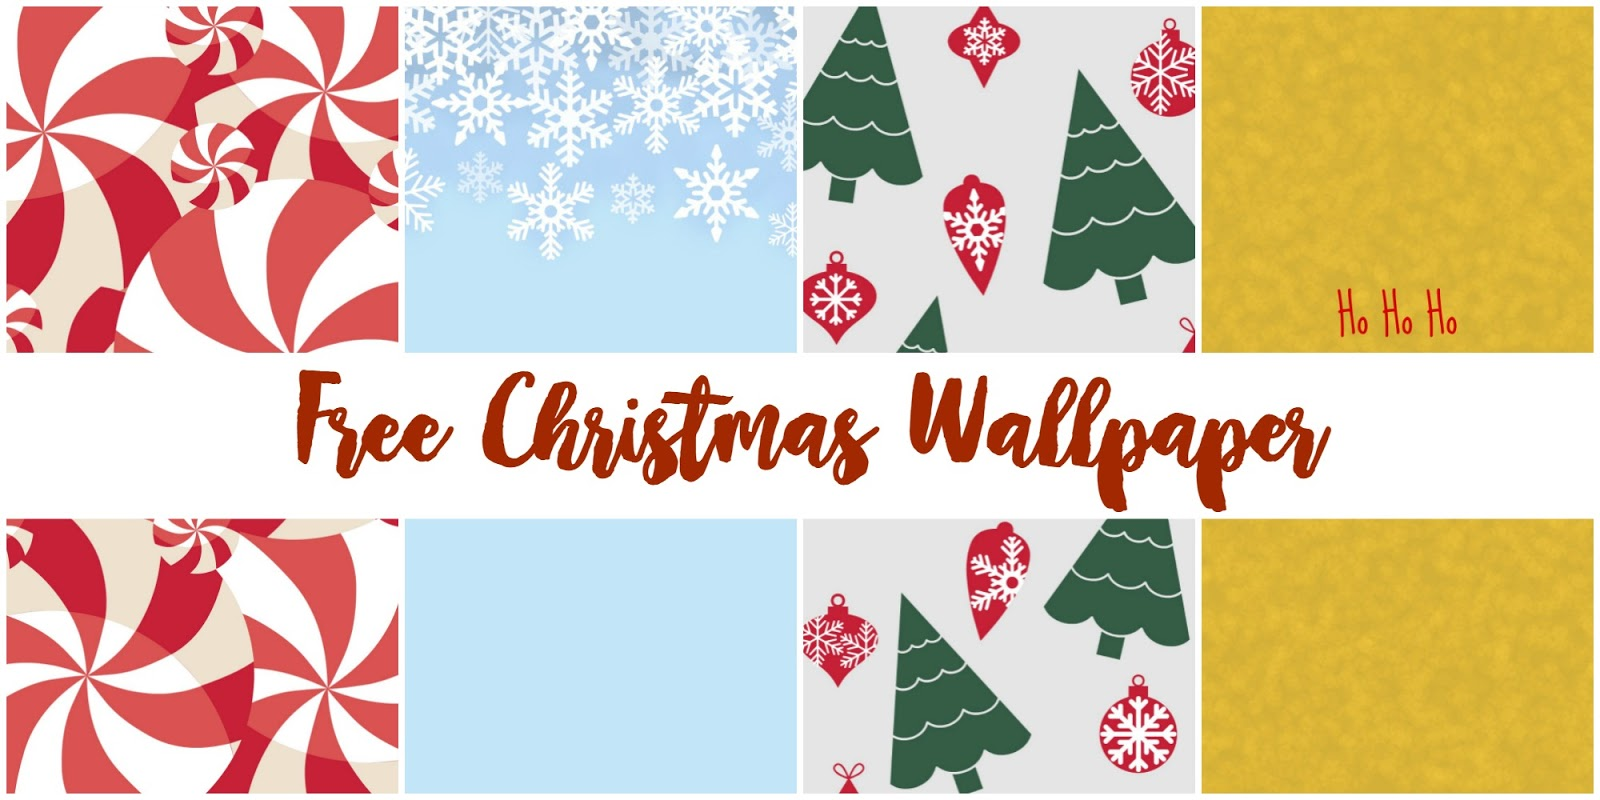 download free phone wallpaper, free christmas designs